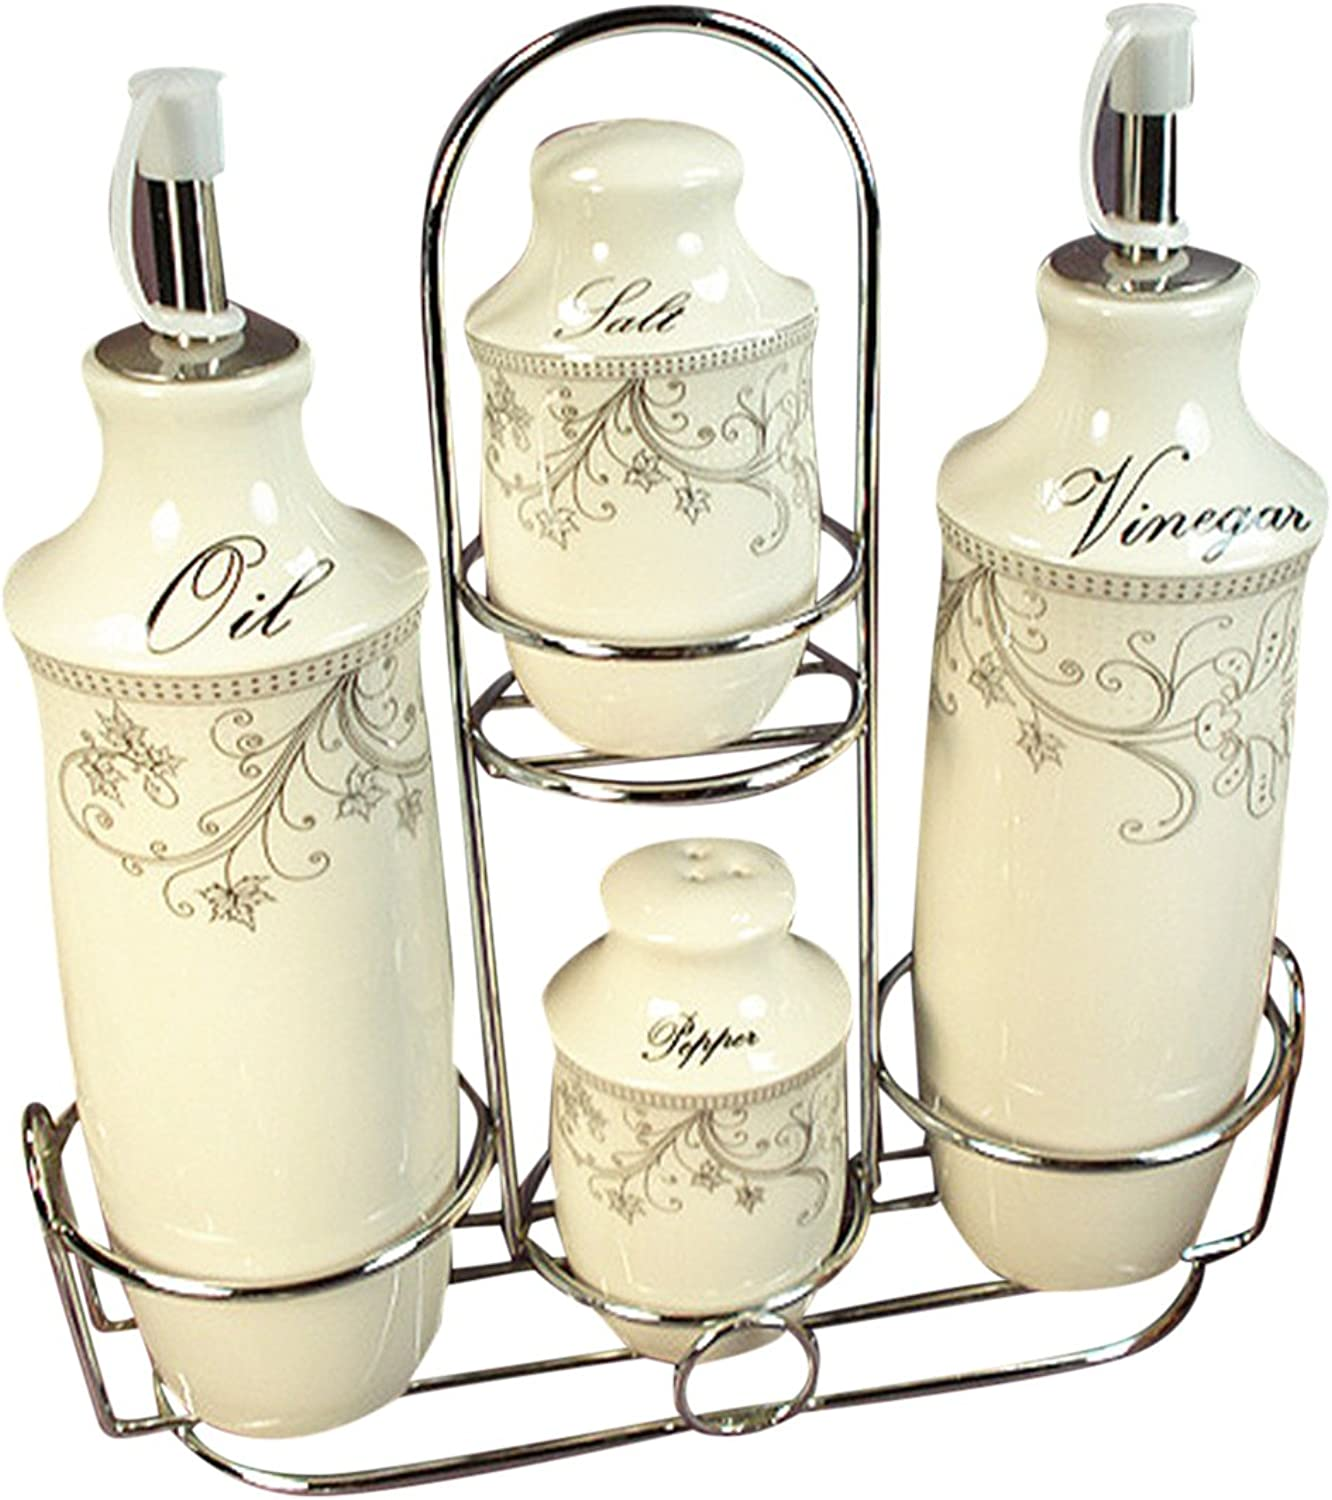 D'Lusso Designs CS35 Damask Set 4 Pc Oil Salt Pepper with Metal Caddy